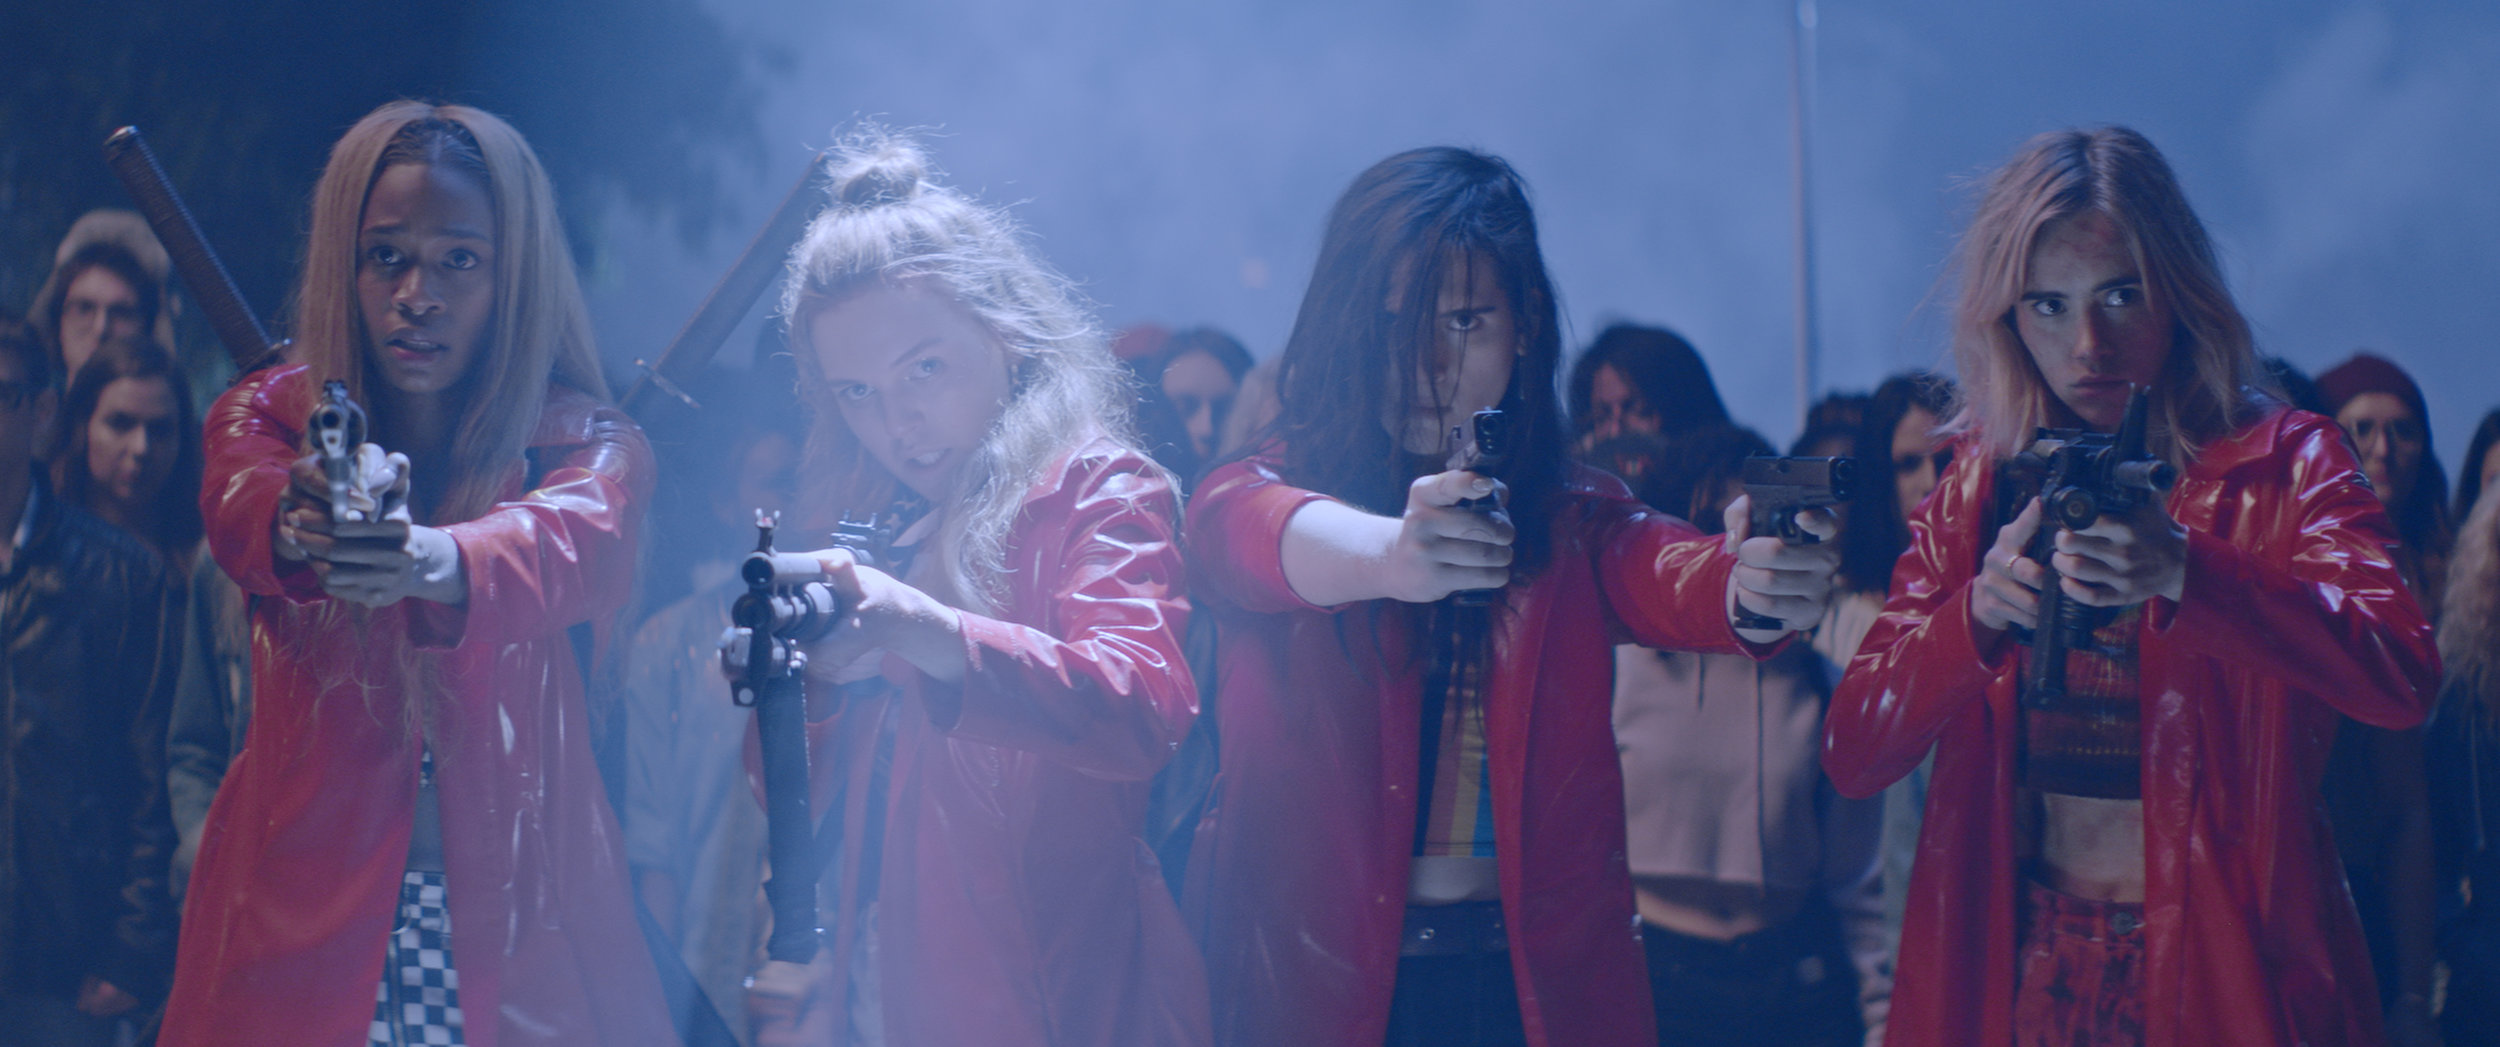 Abra , Odessa Young, Hari Nef and Suki Waterhouse) in Assassination Nation